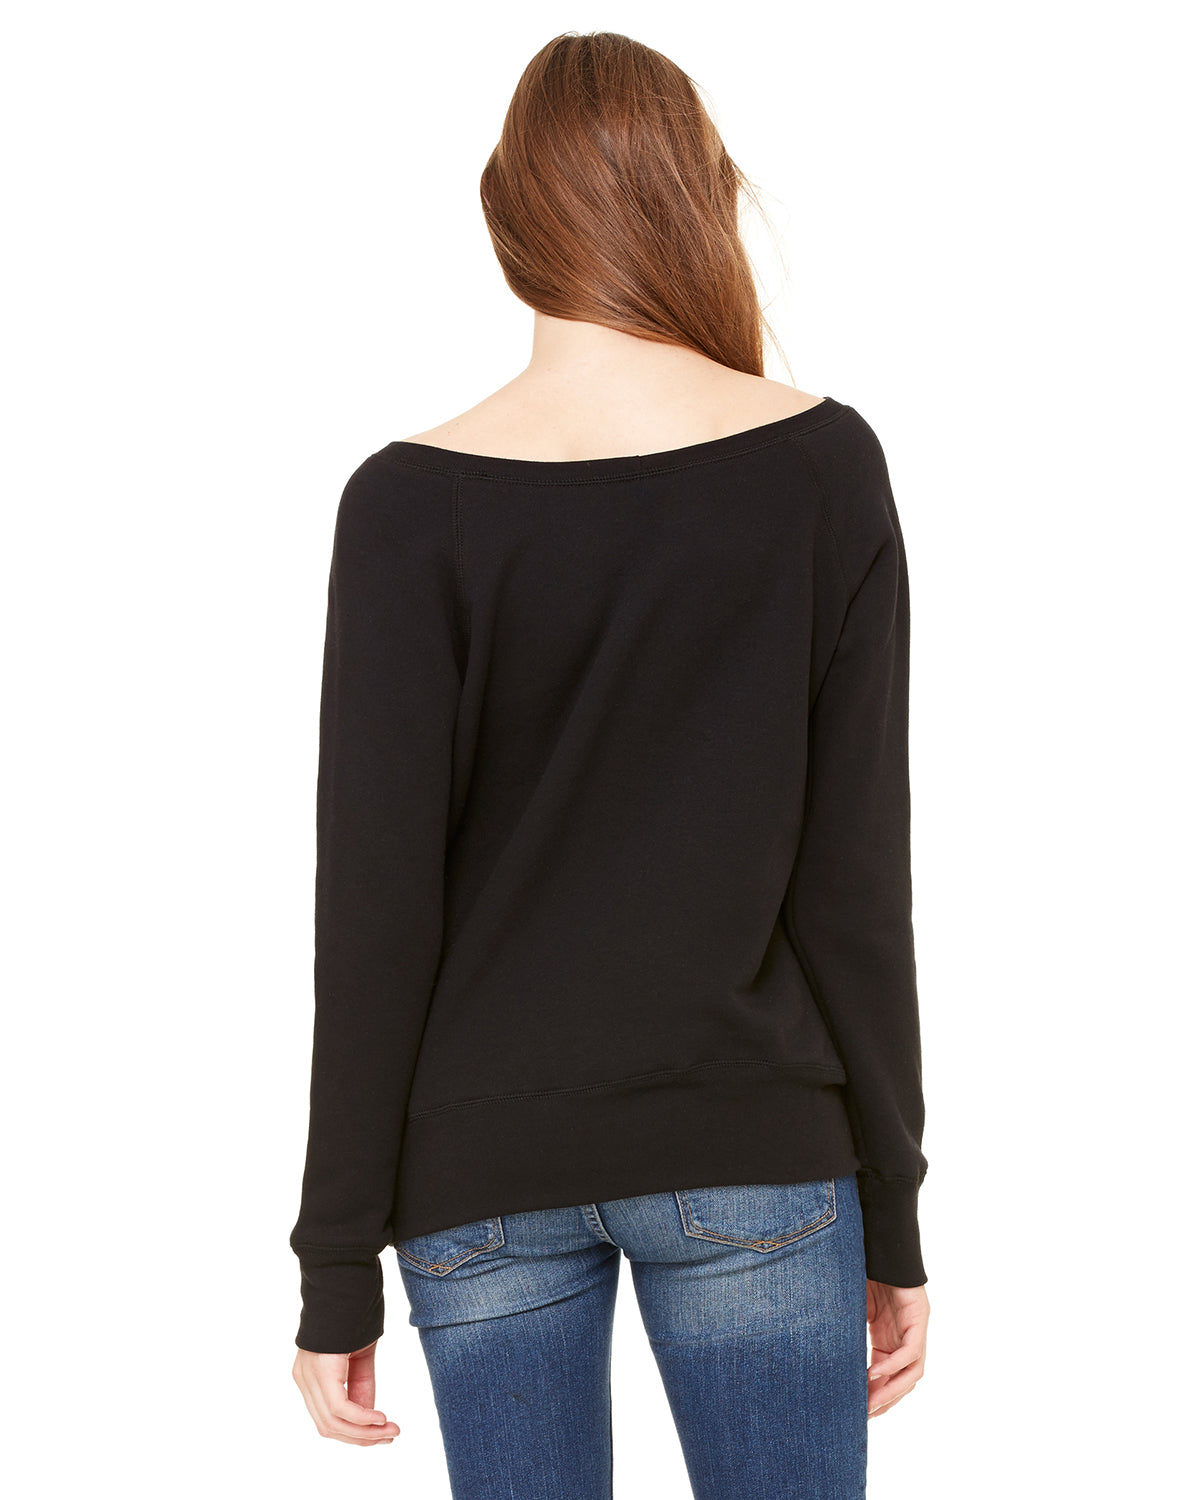 Sympathy Off Shoulder Sweatshirt